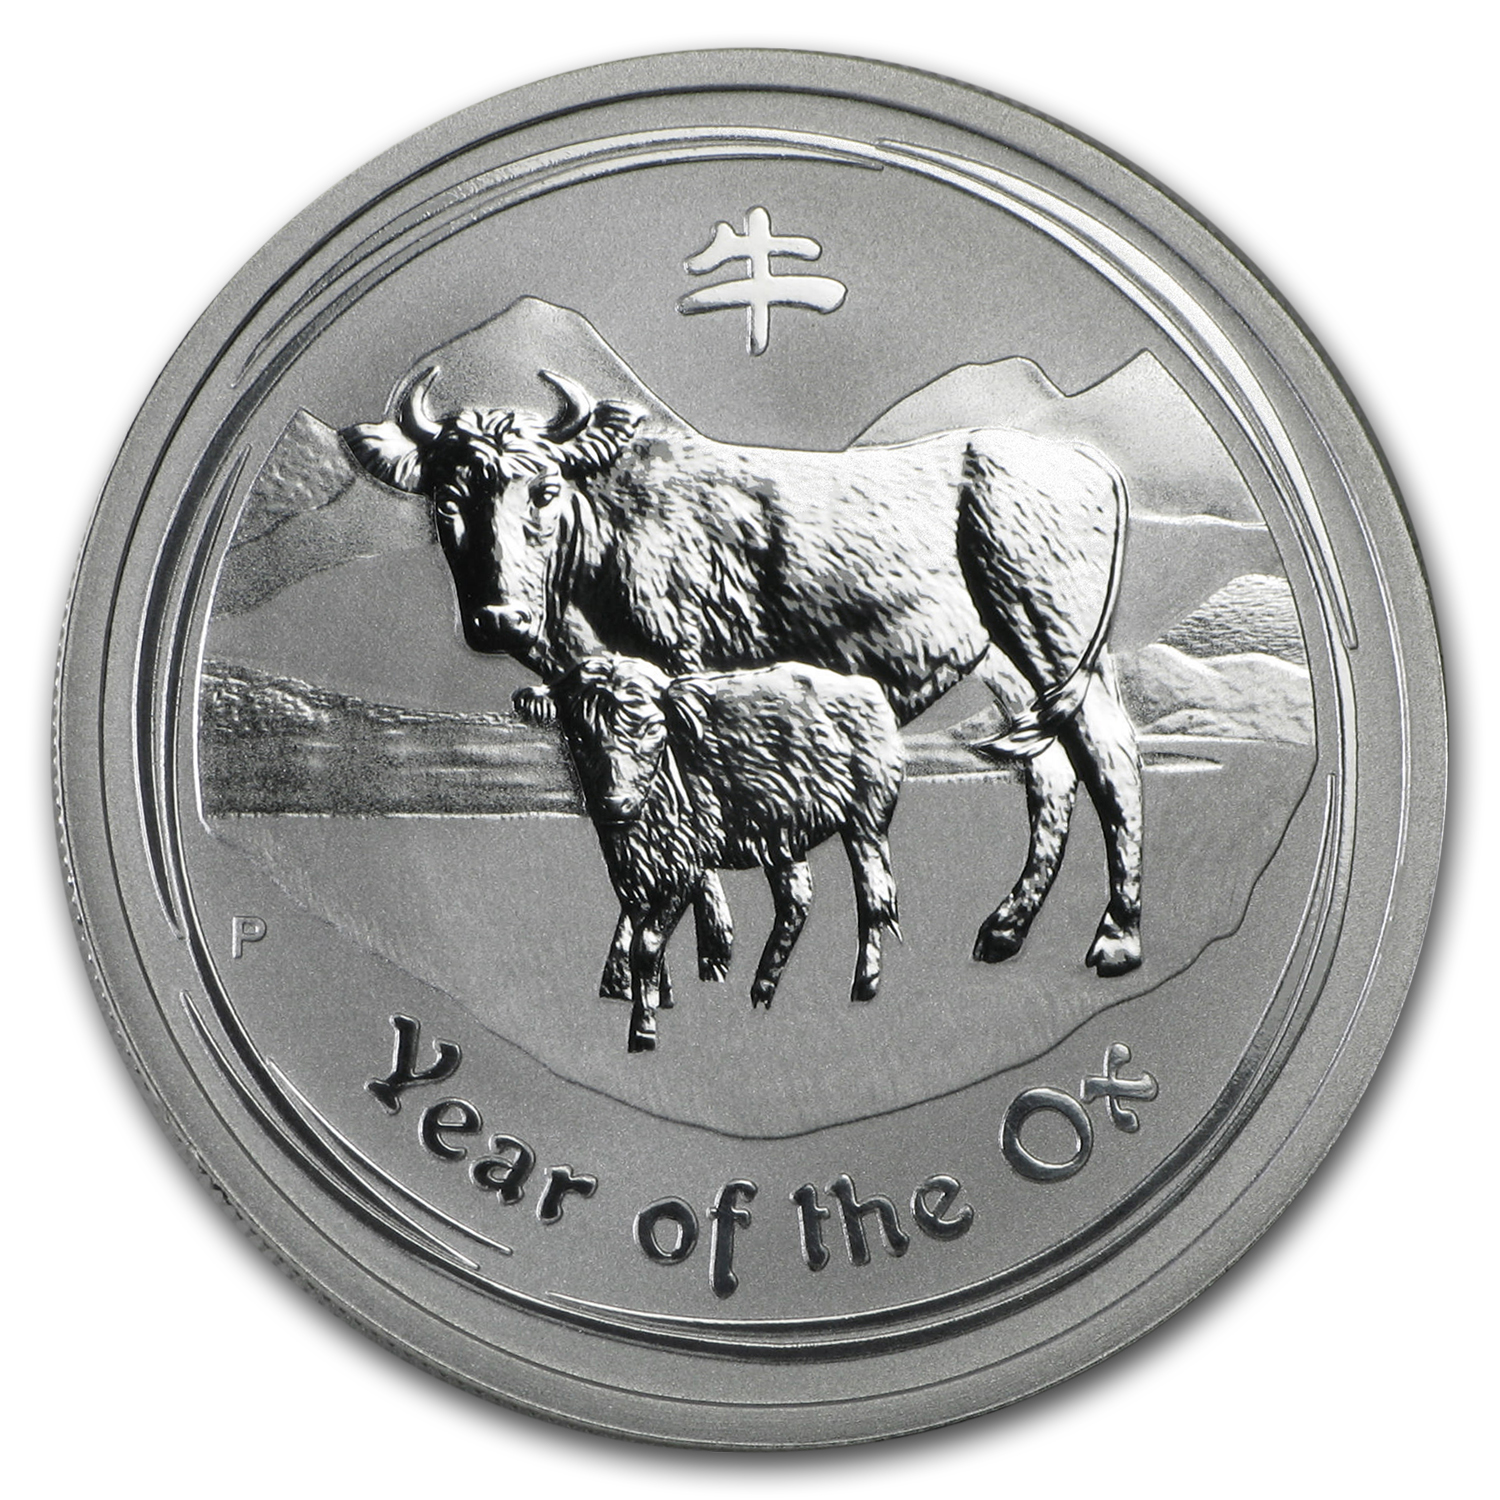 2009 1/2 oz Silver Australian Year of the Ox BU (Series II)